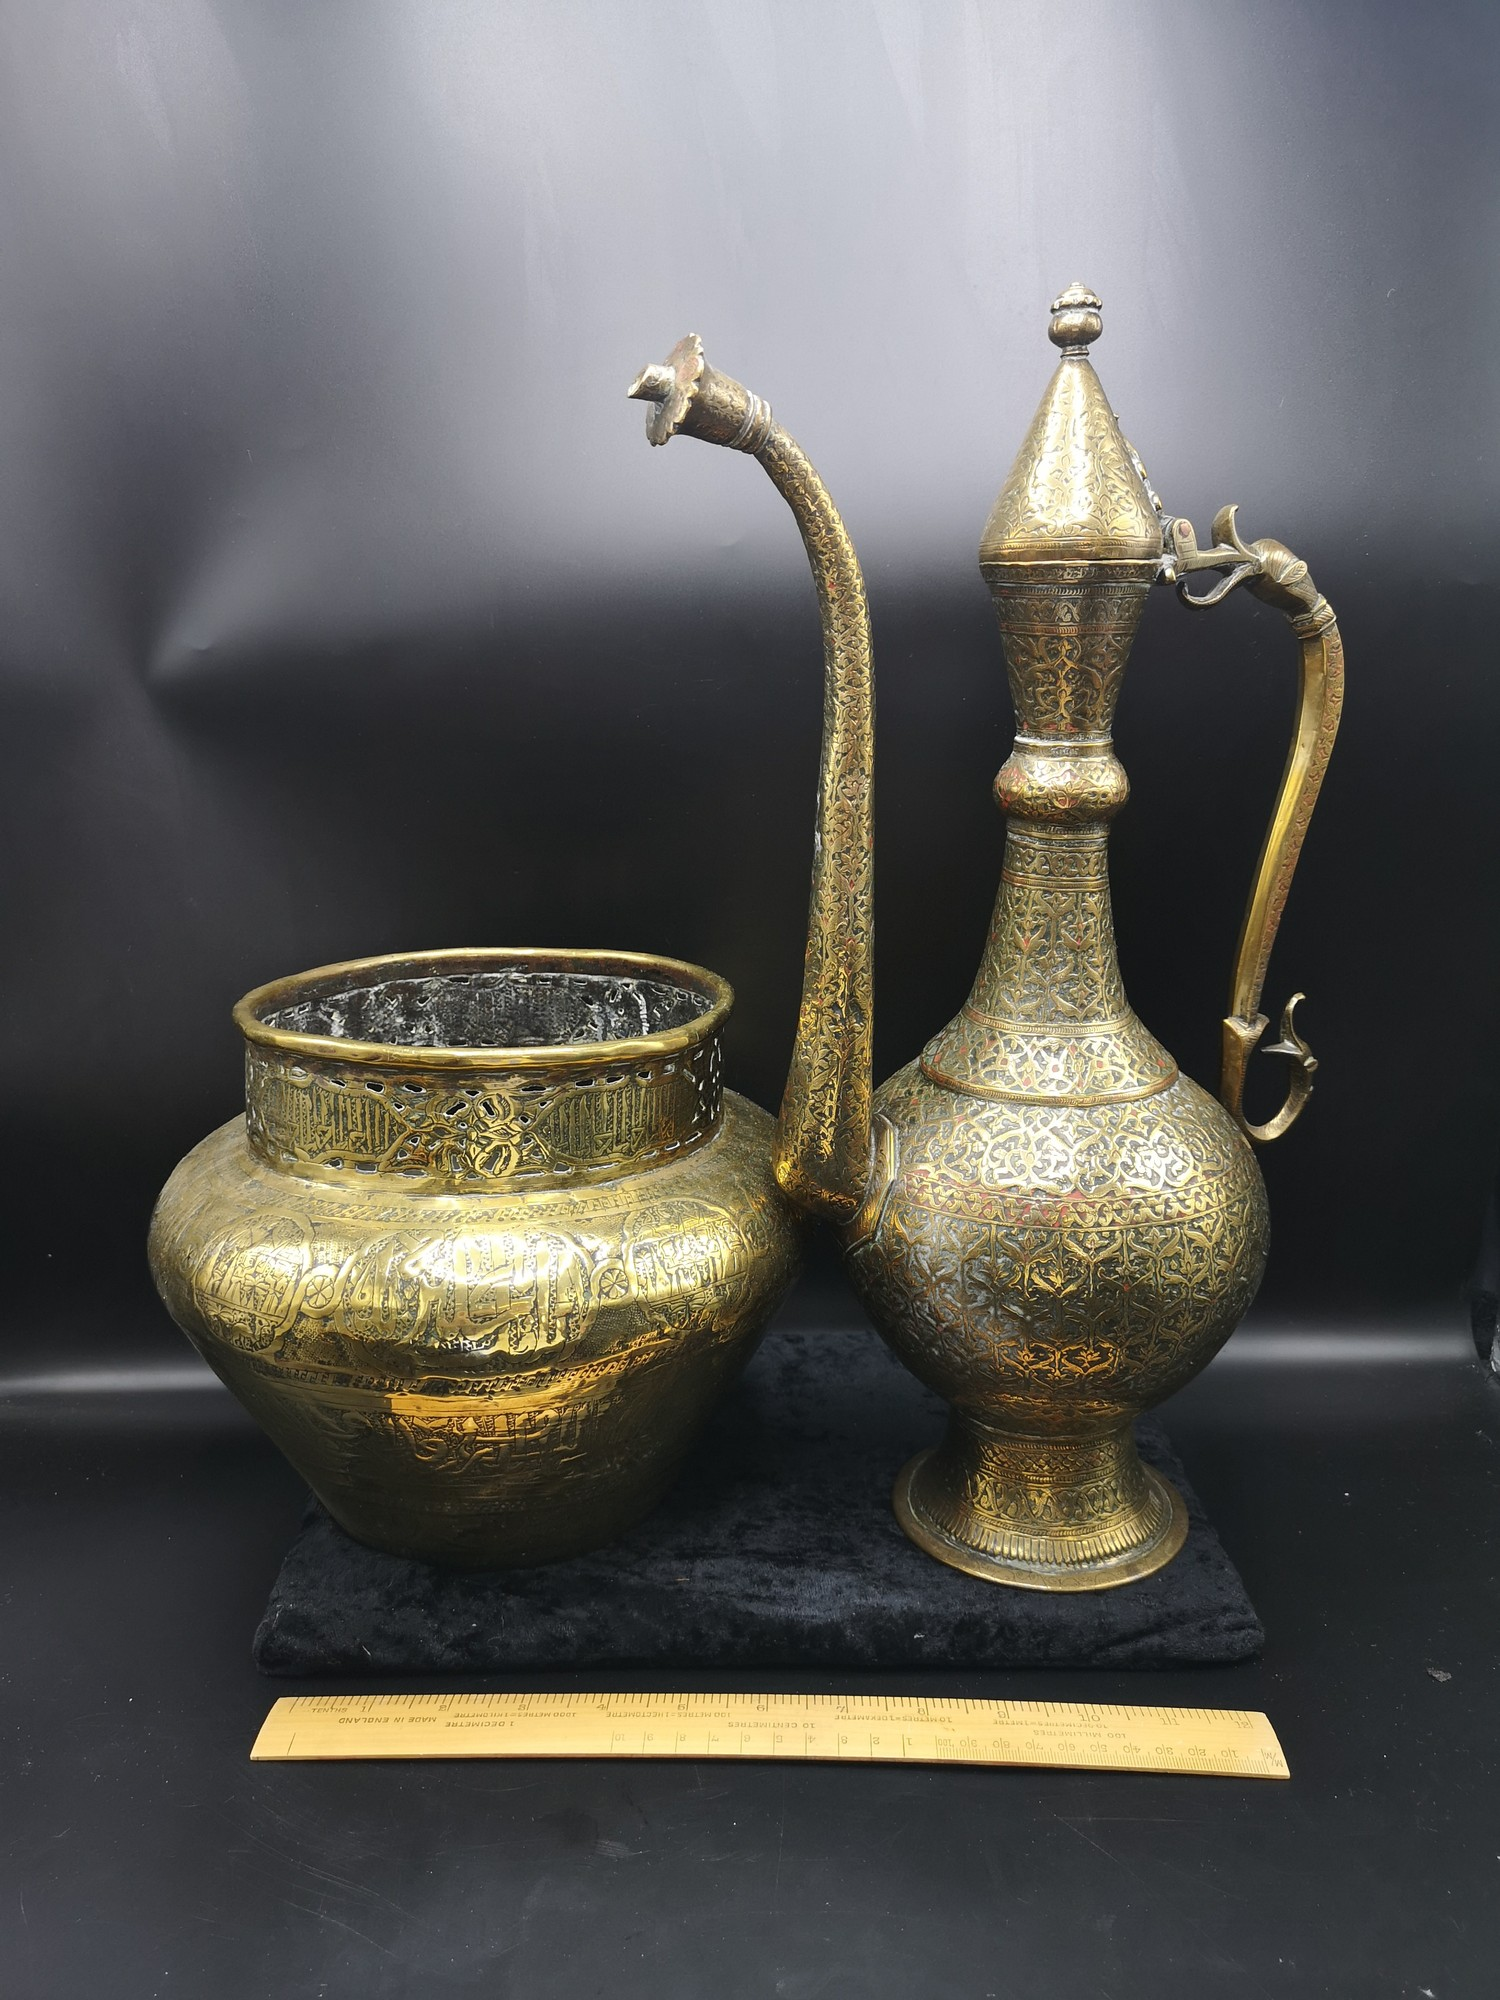 Large Arabic brass planter 8.5 inches in height together with large heavy ornate eastern tea pot